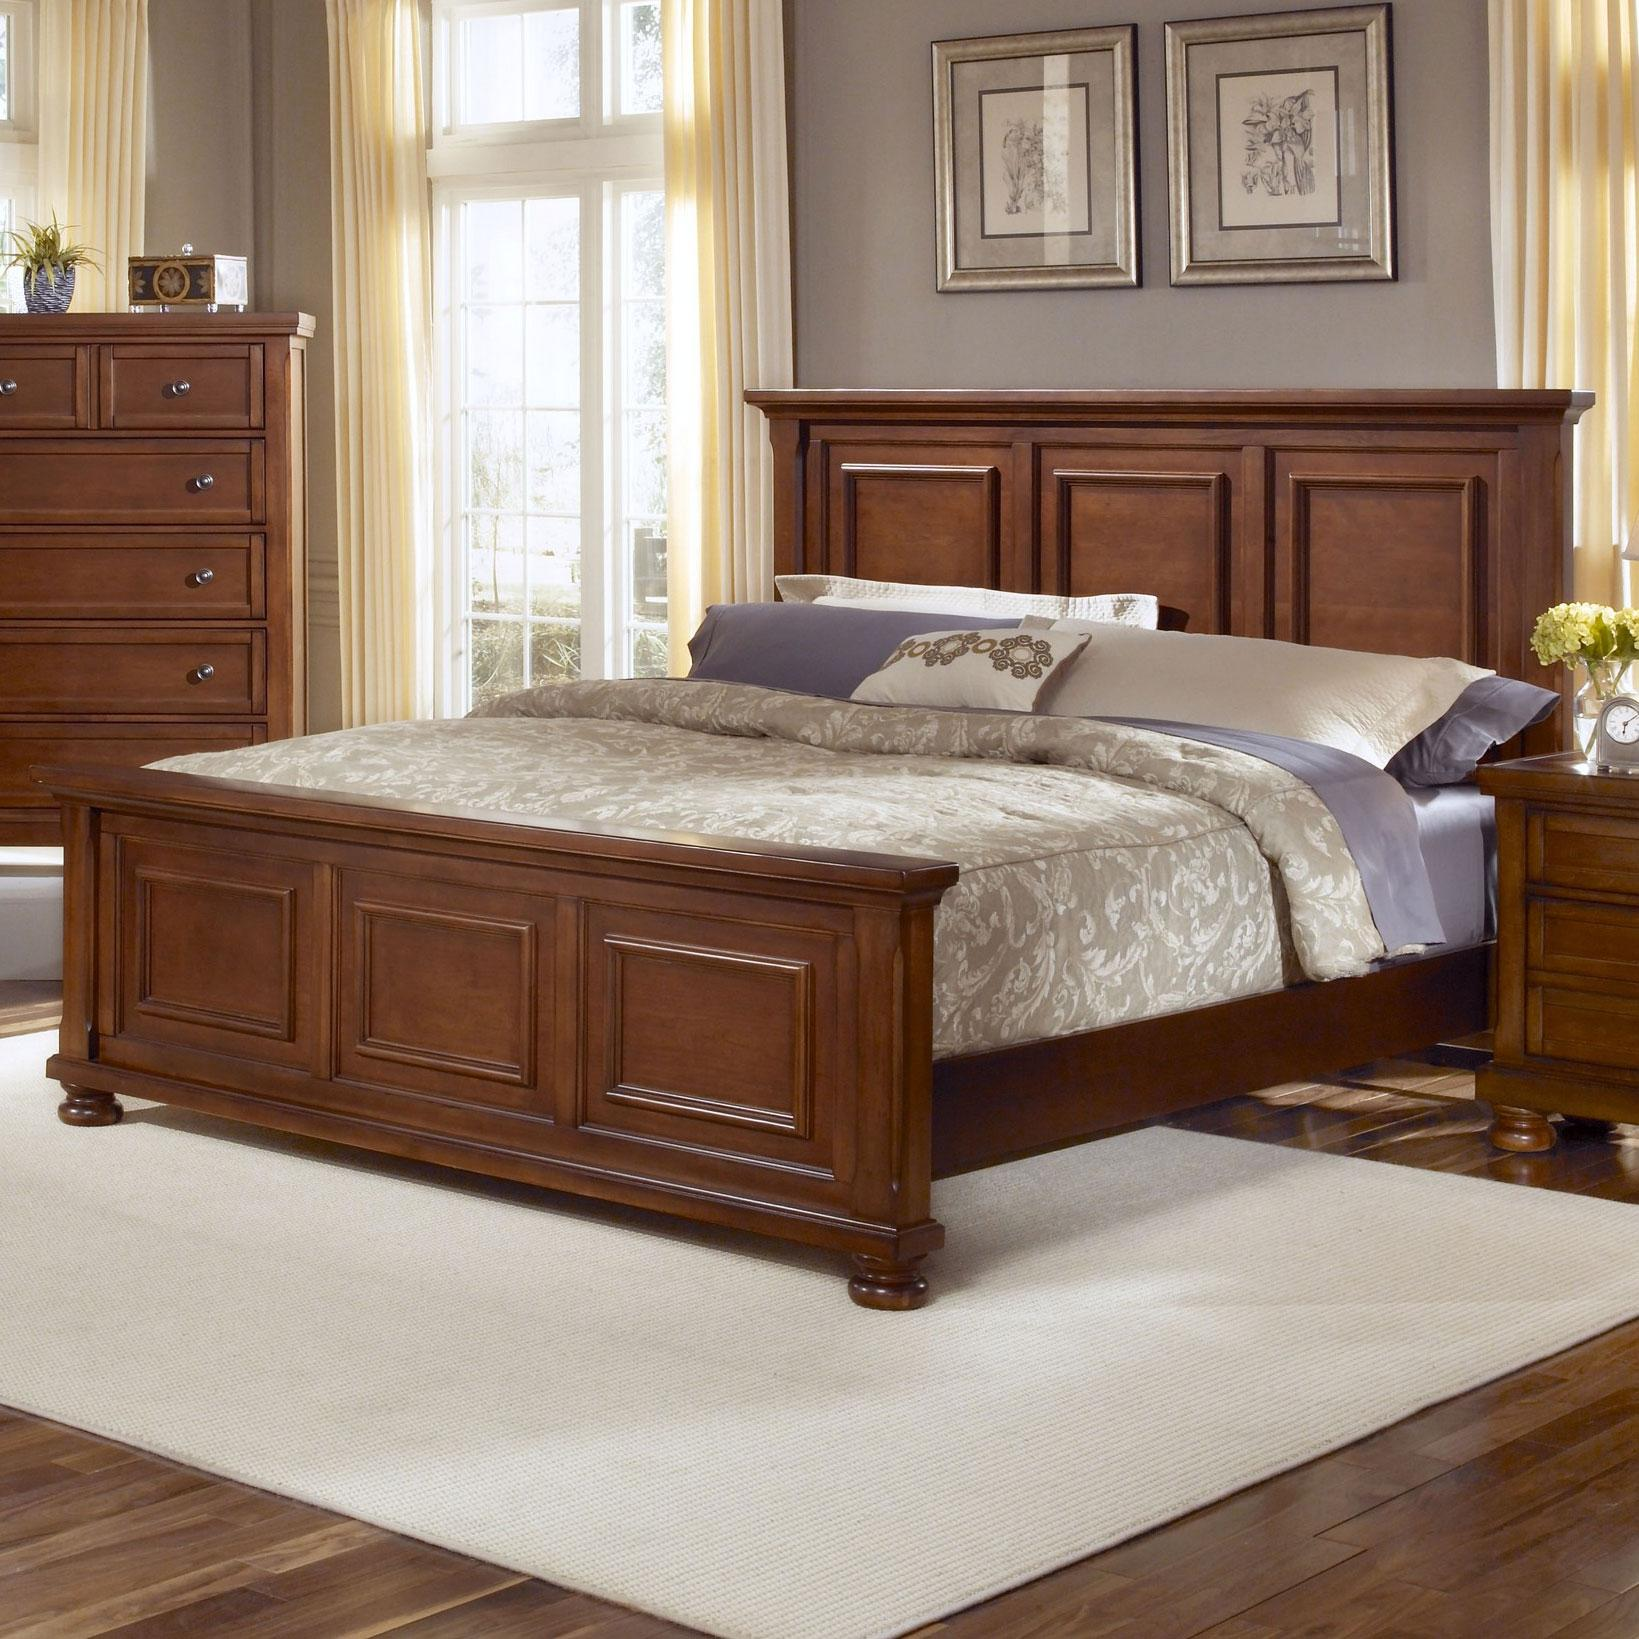 Vaughan Bassett Reflections Queen Mansion Bed - Item Number: 532-558+855+922